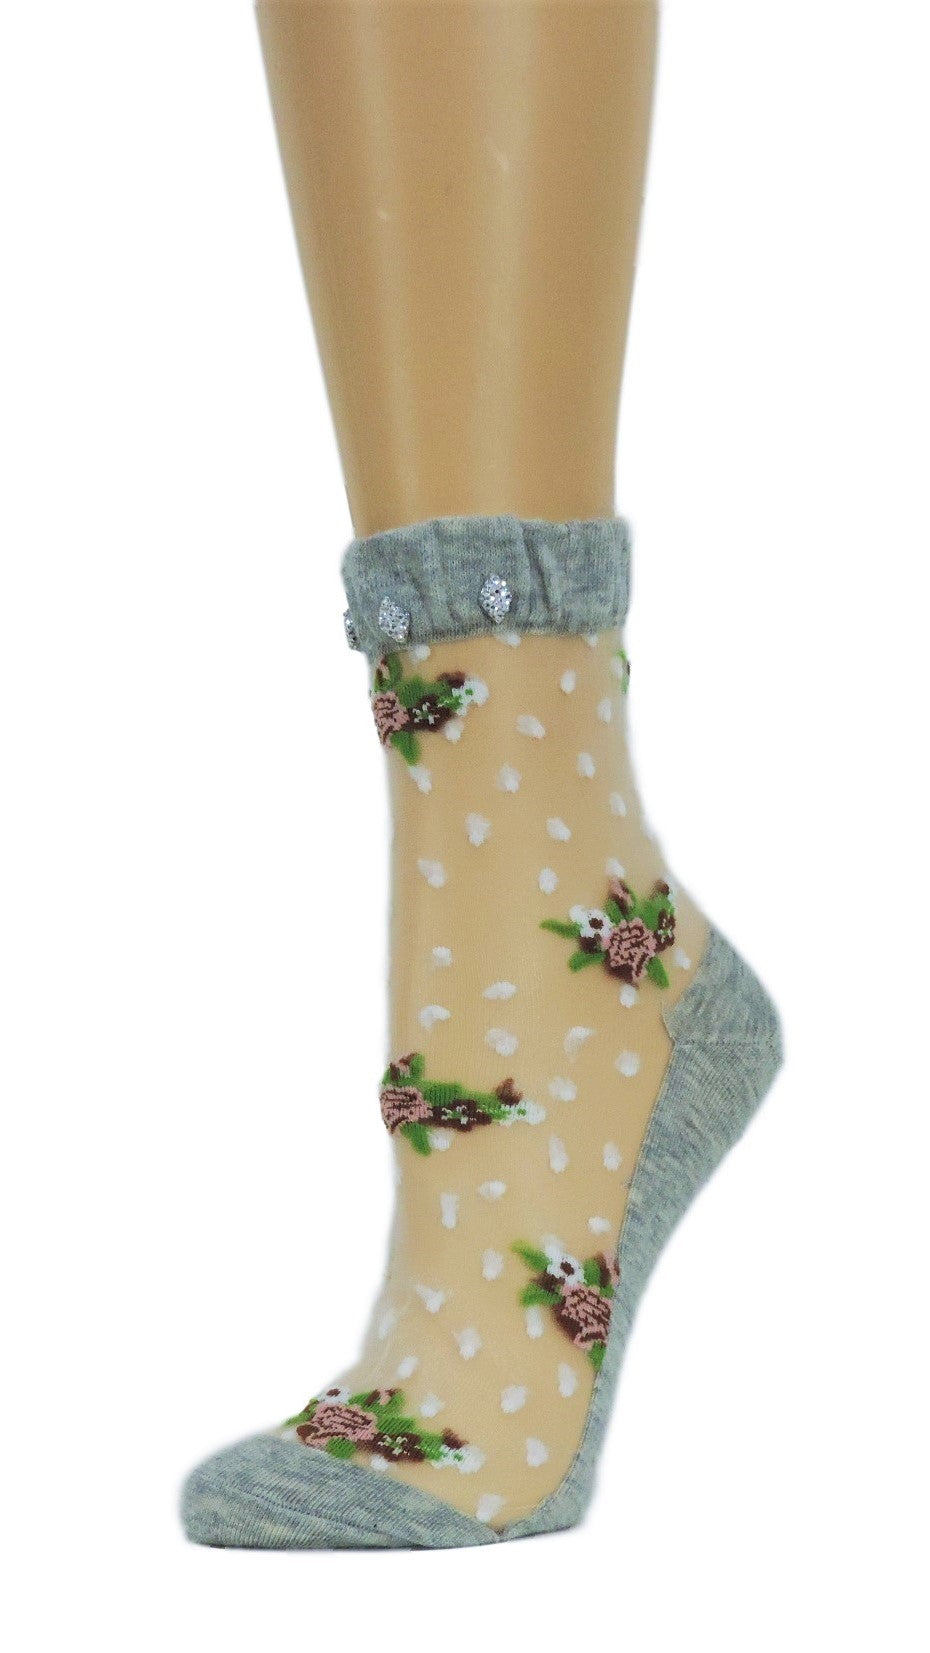 Flowers Bunch Custom Sheer Socks with crystals - Global Trendz Fashion®